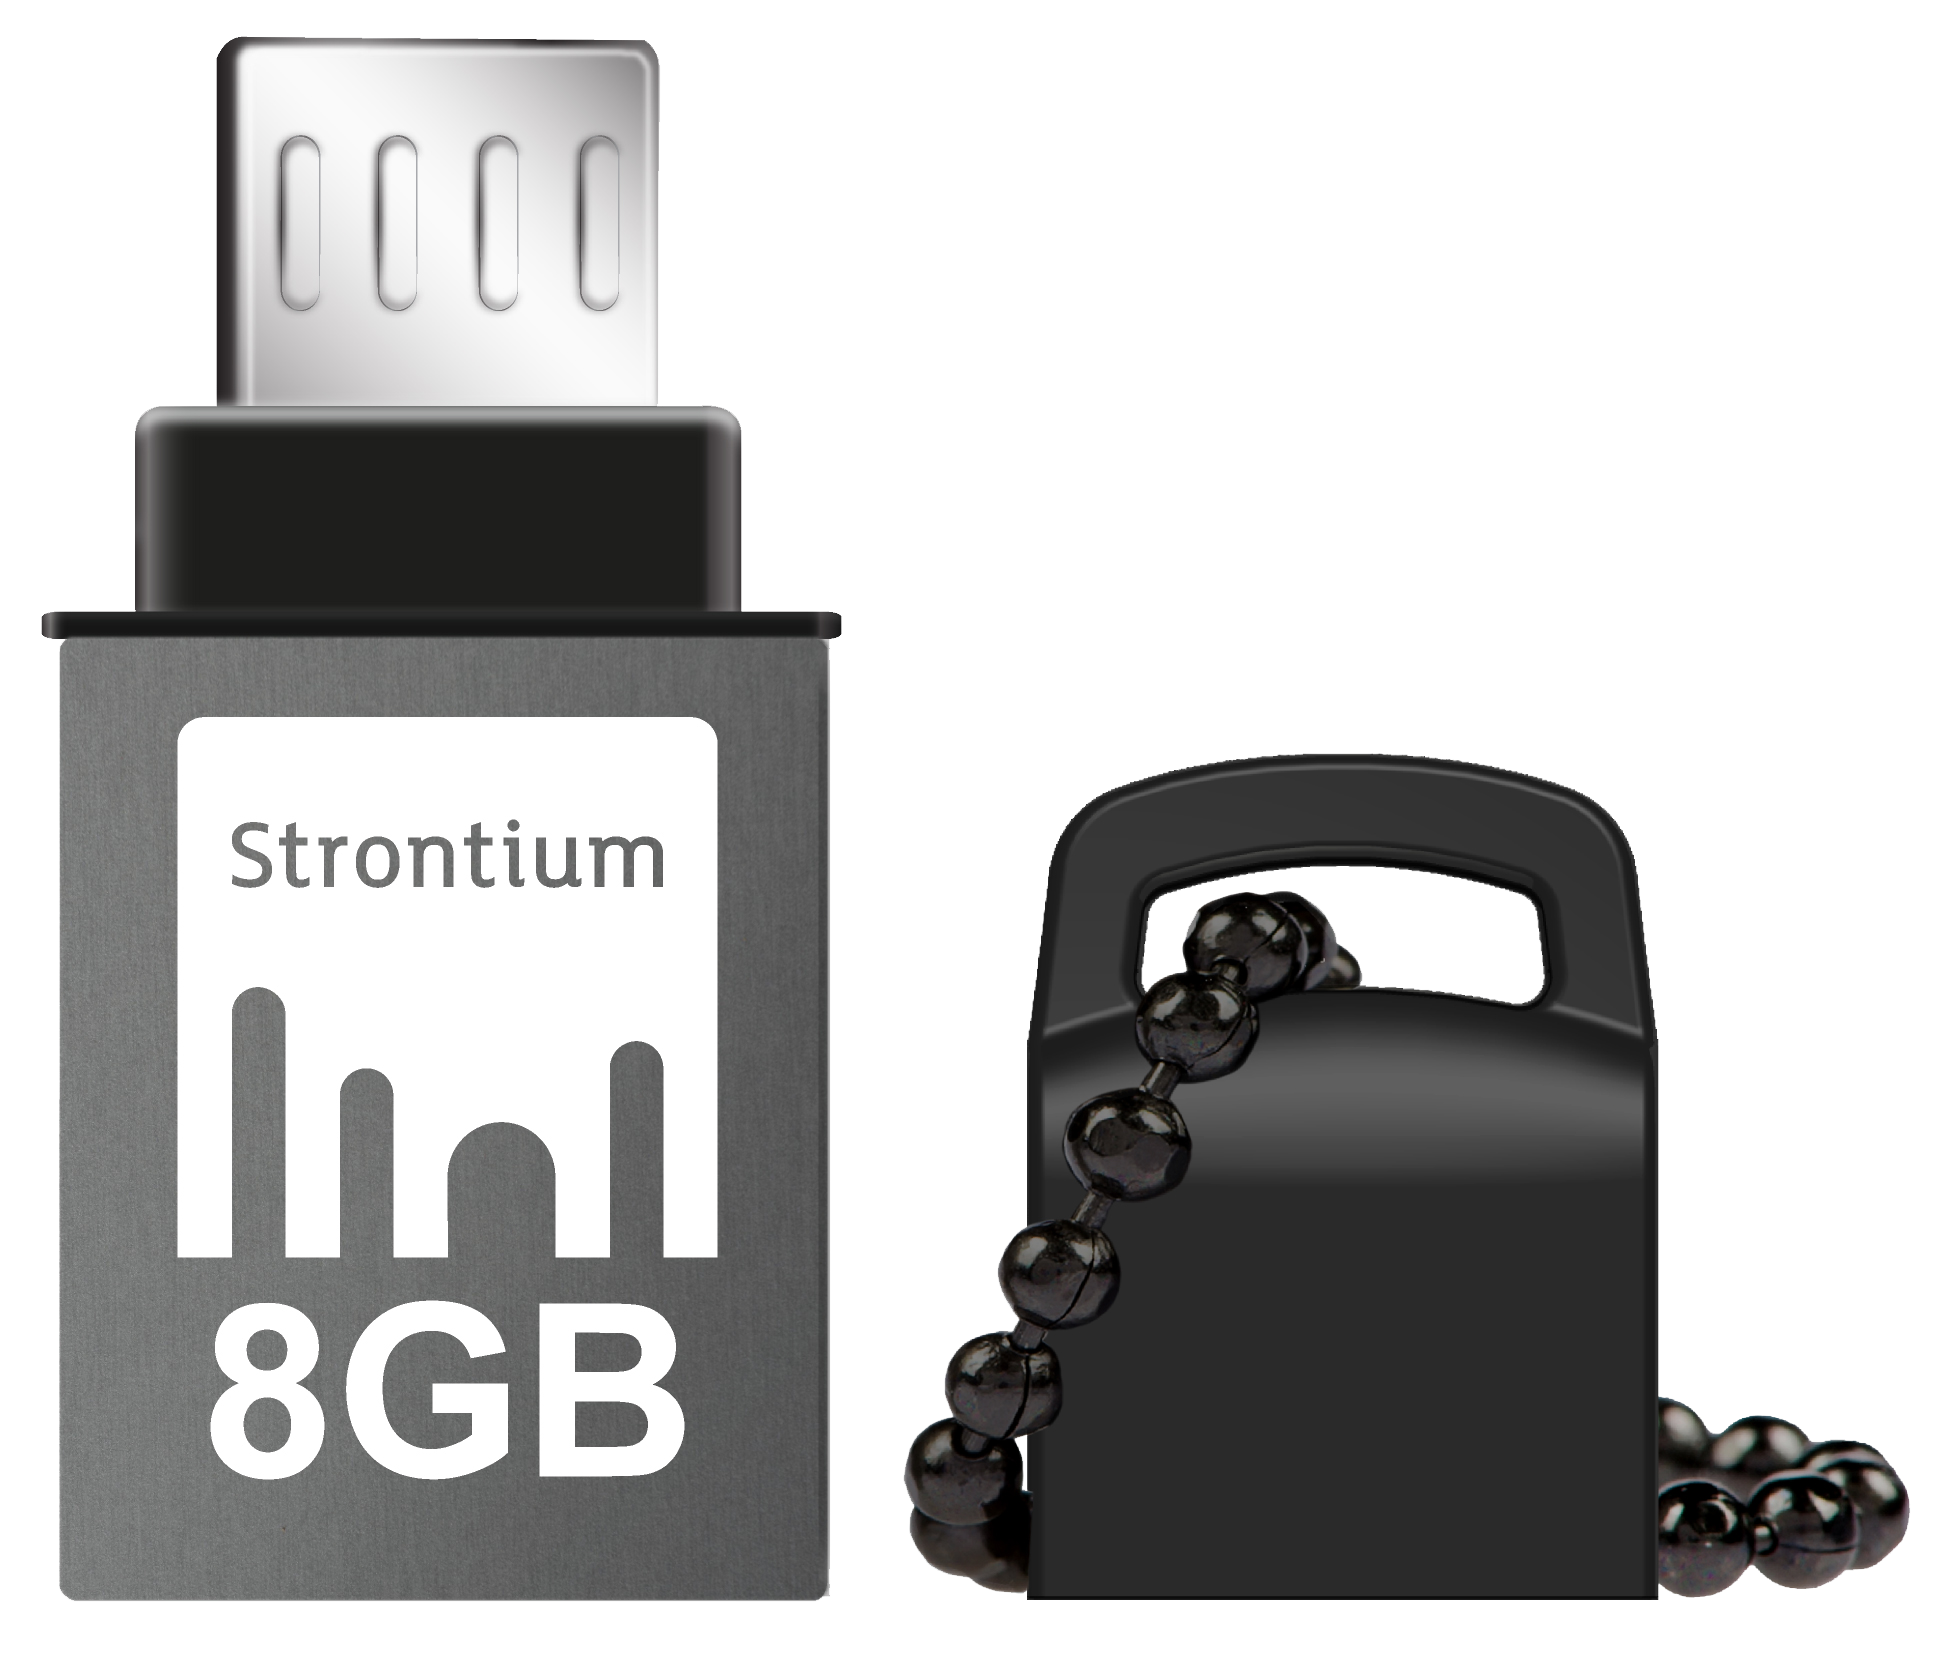 how to use strontium otg card reader